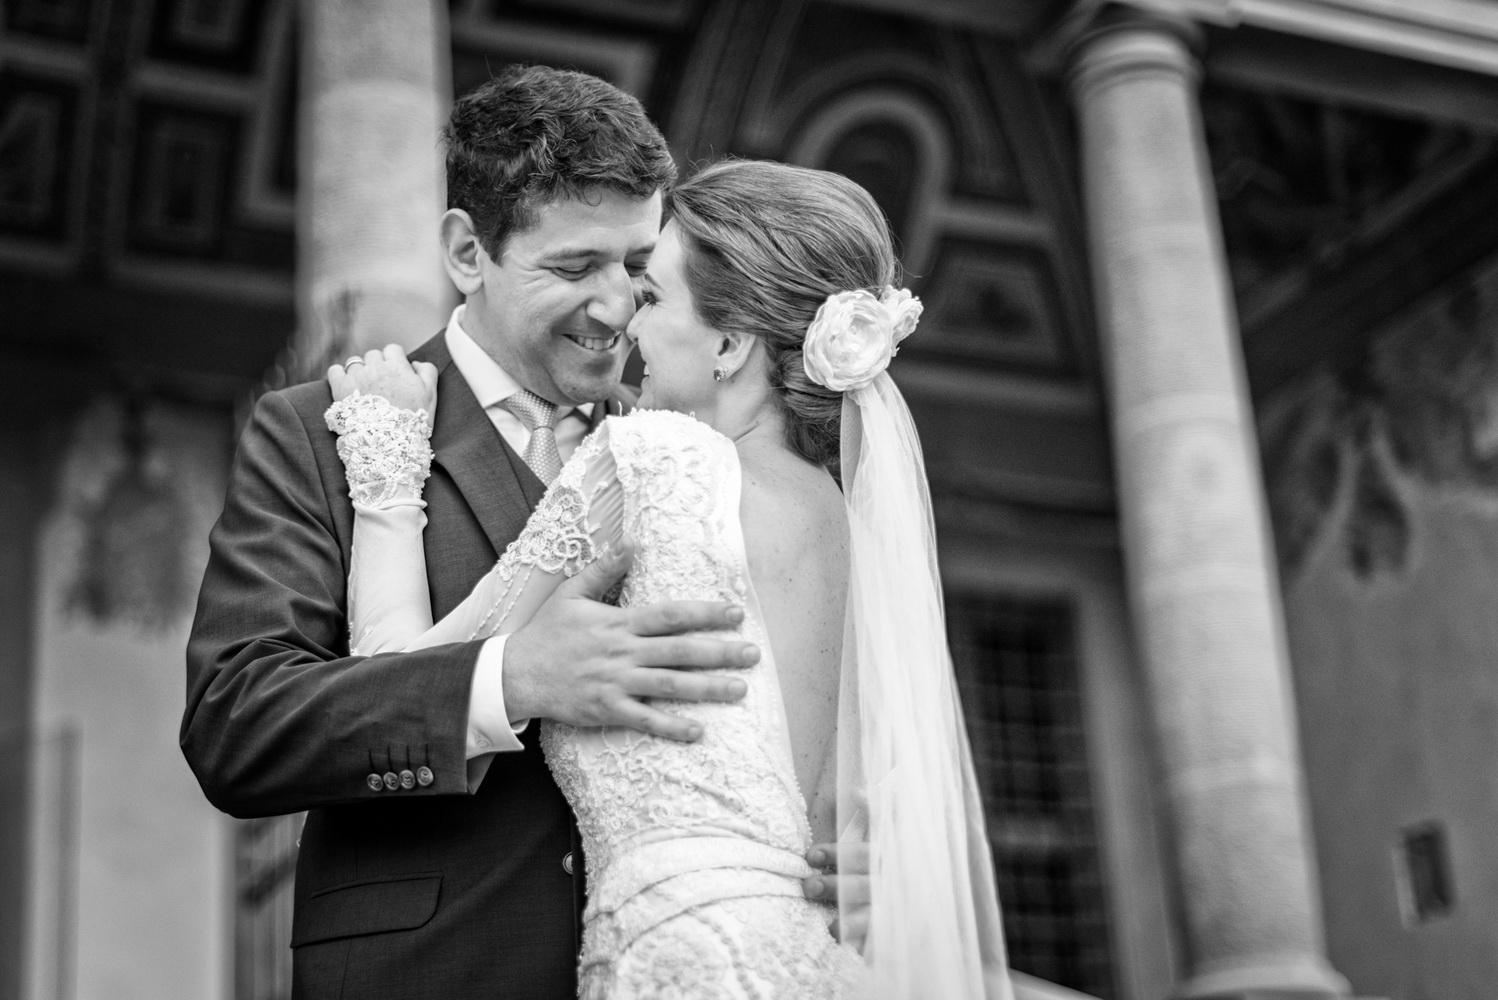 destination wedding na toscana | caroline e fernando Destination Wedding na Toscana | Caroline e Fernando marco zammarchi destination wedding 54